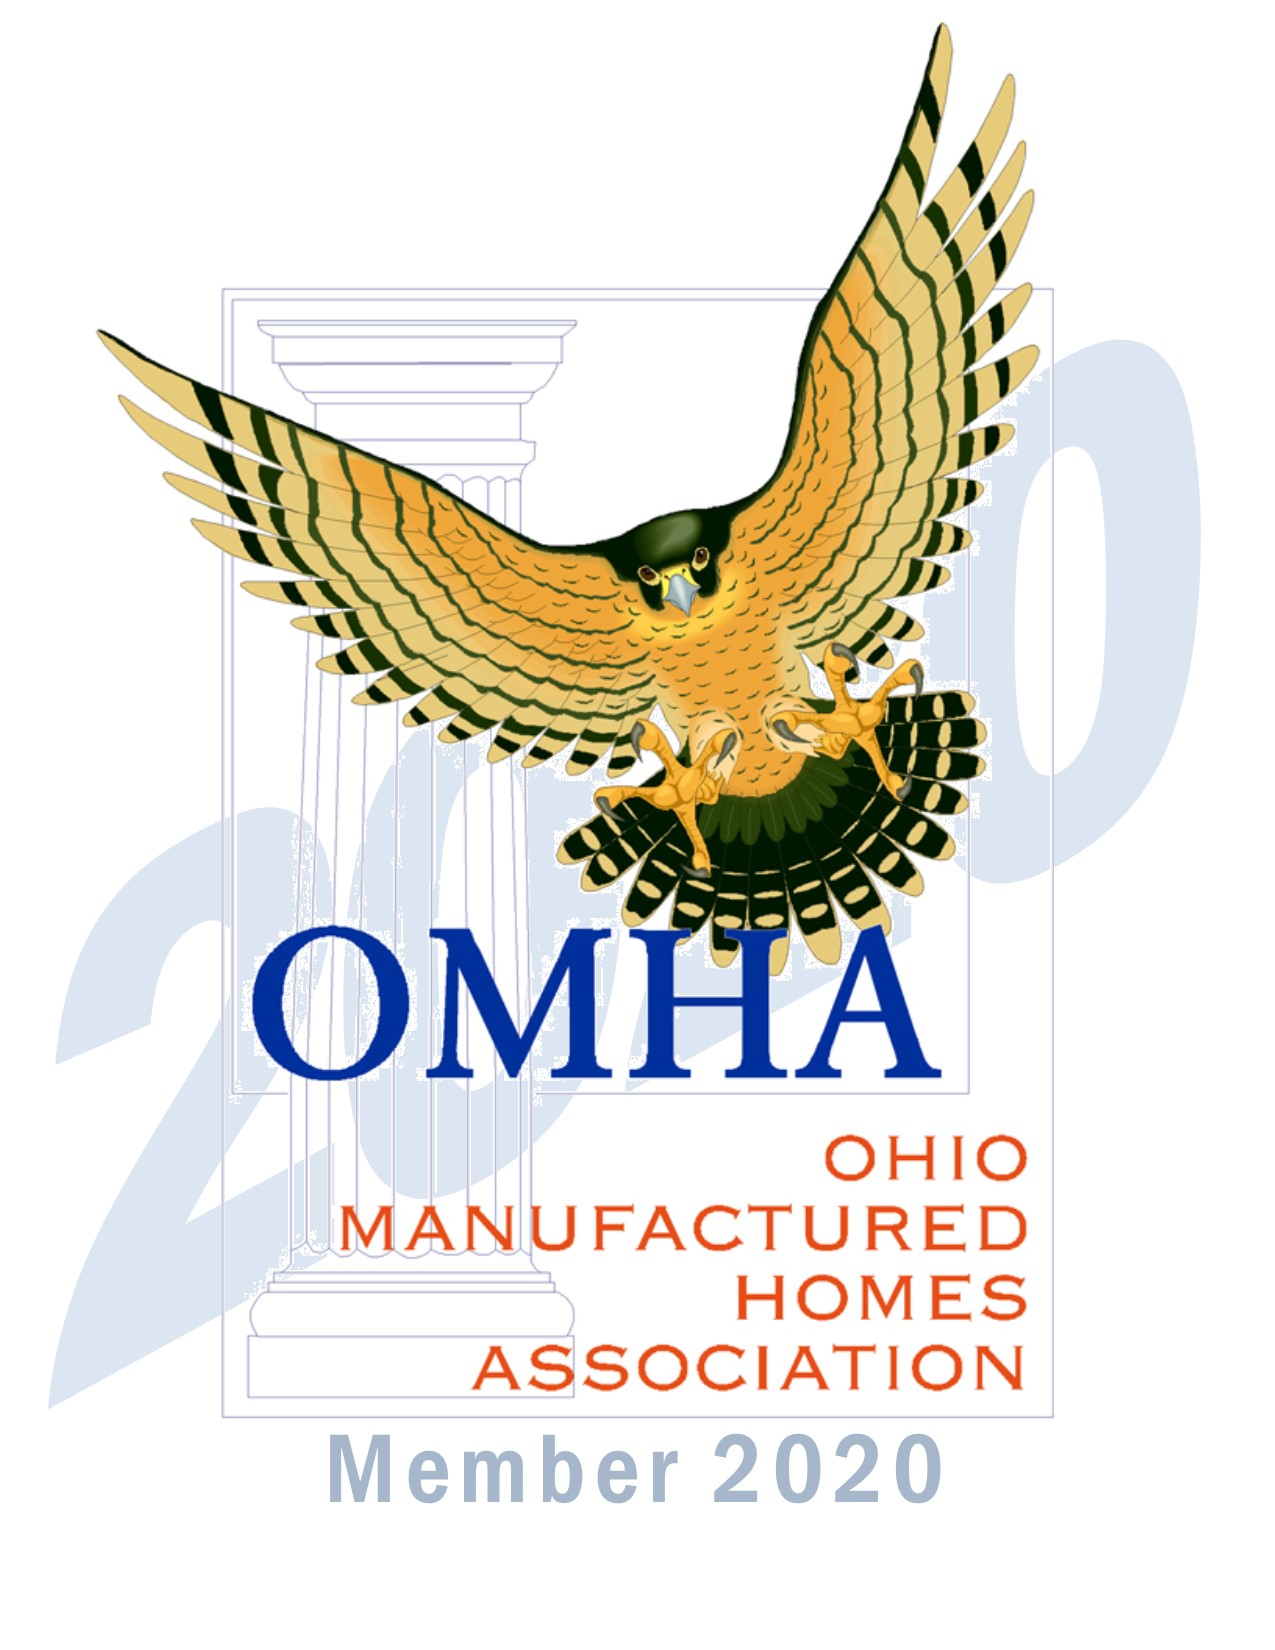 Ohio Manufactured Homes Association Member